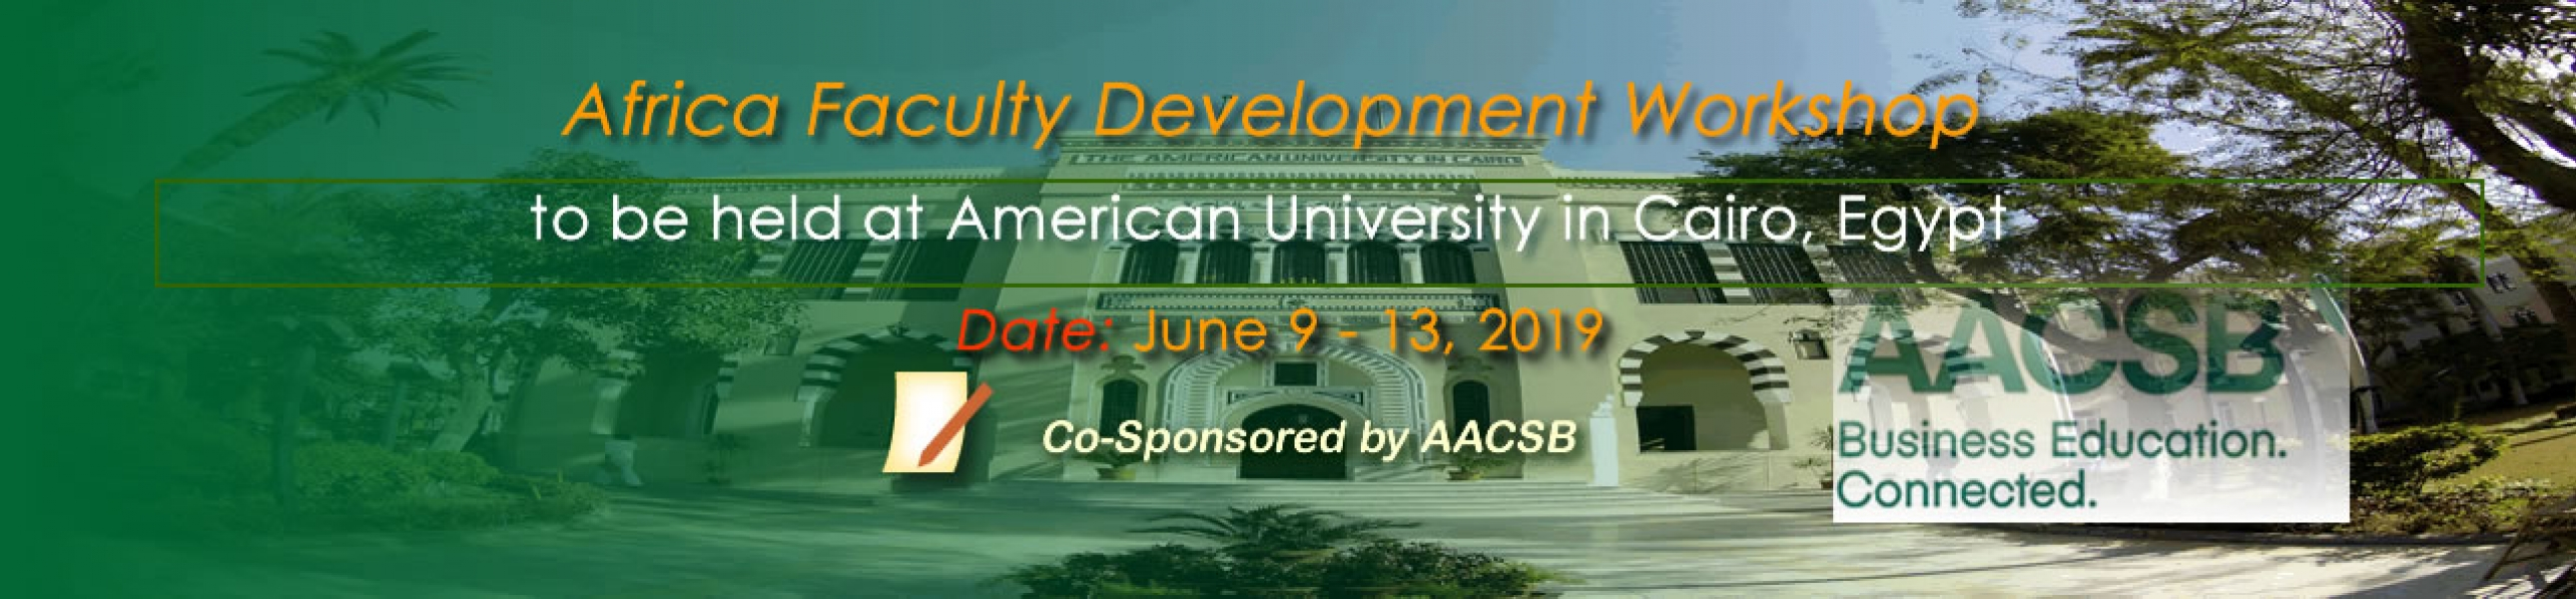 Africa Faculty Development Worshop - The American University, Cairo